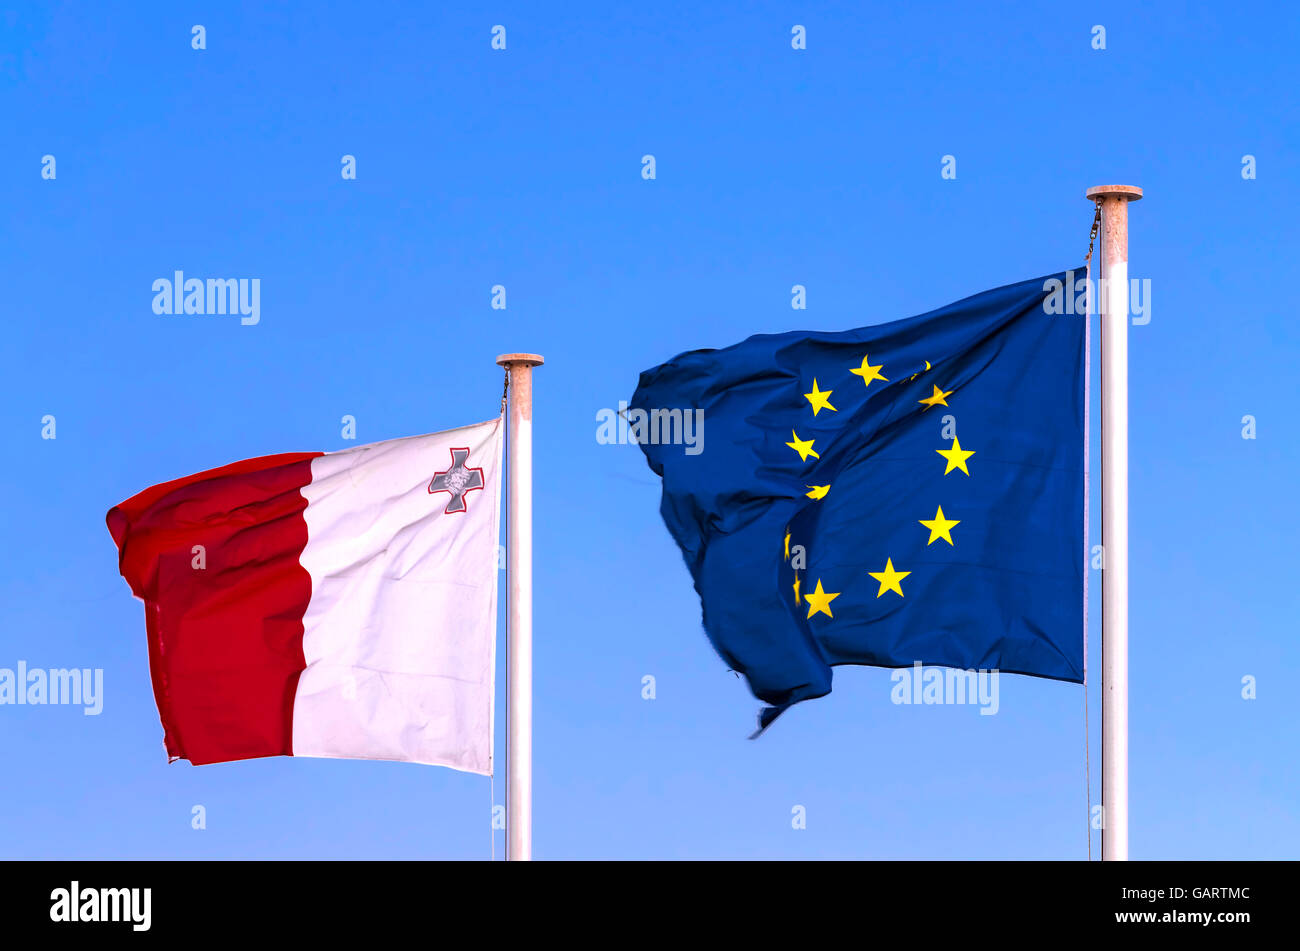 Maltese and EU flags next to each other on the blue sky waving in the wind - Valletta, Malta - Stock Image